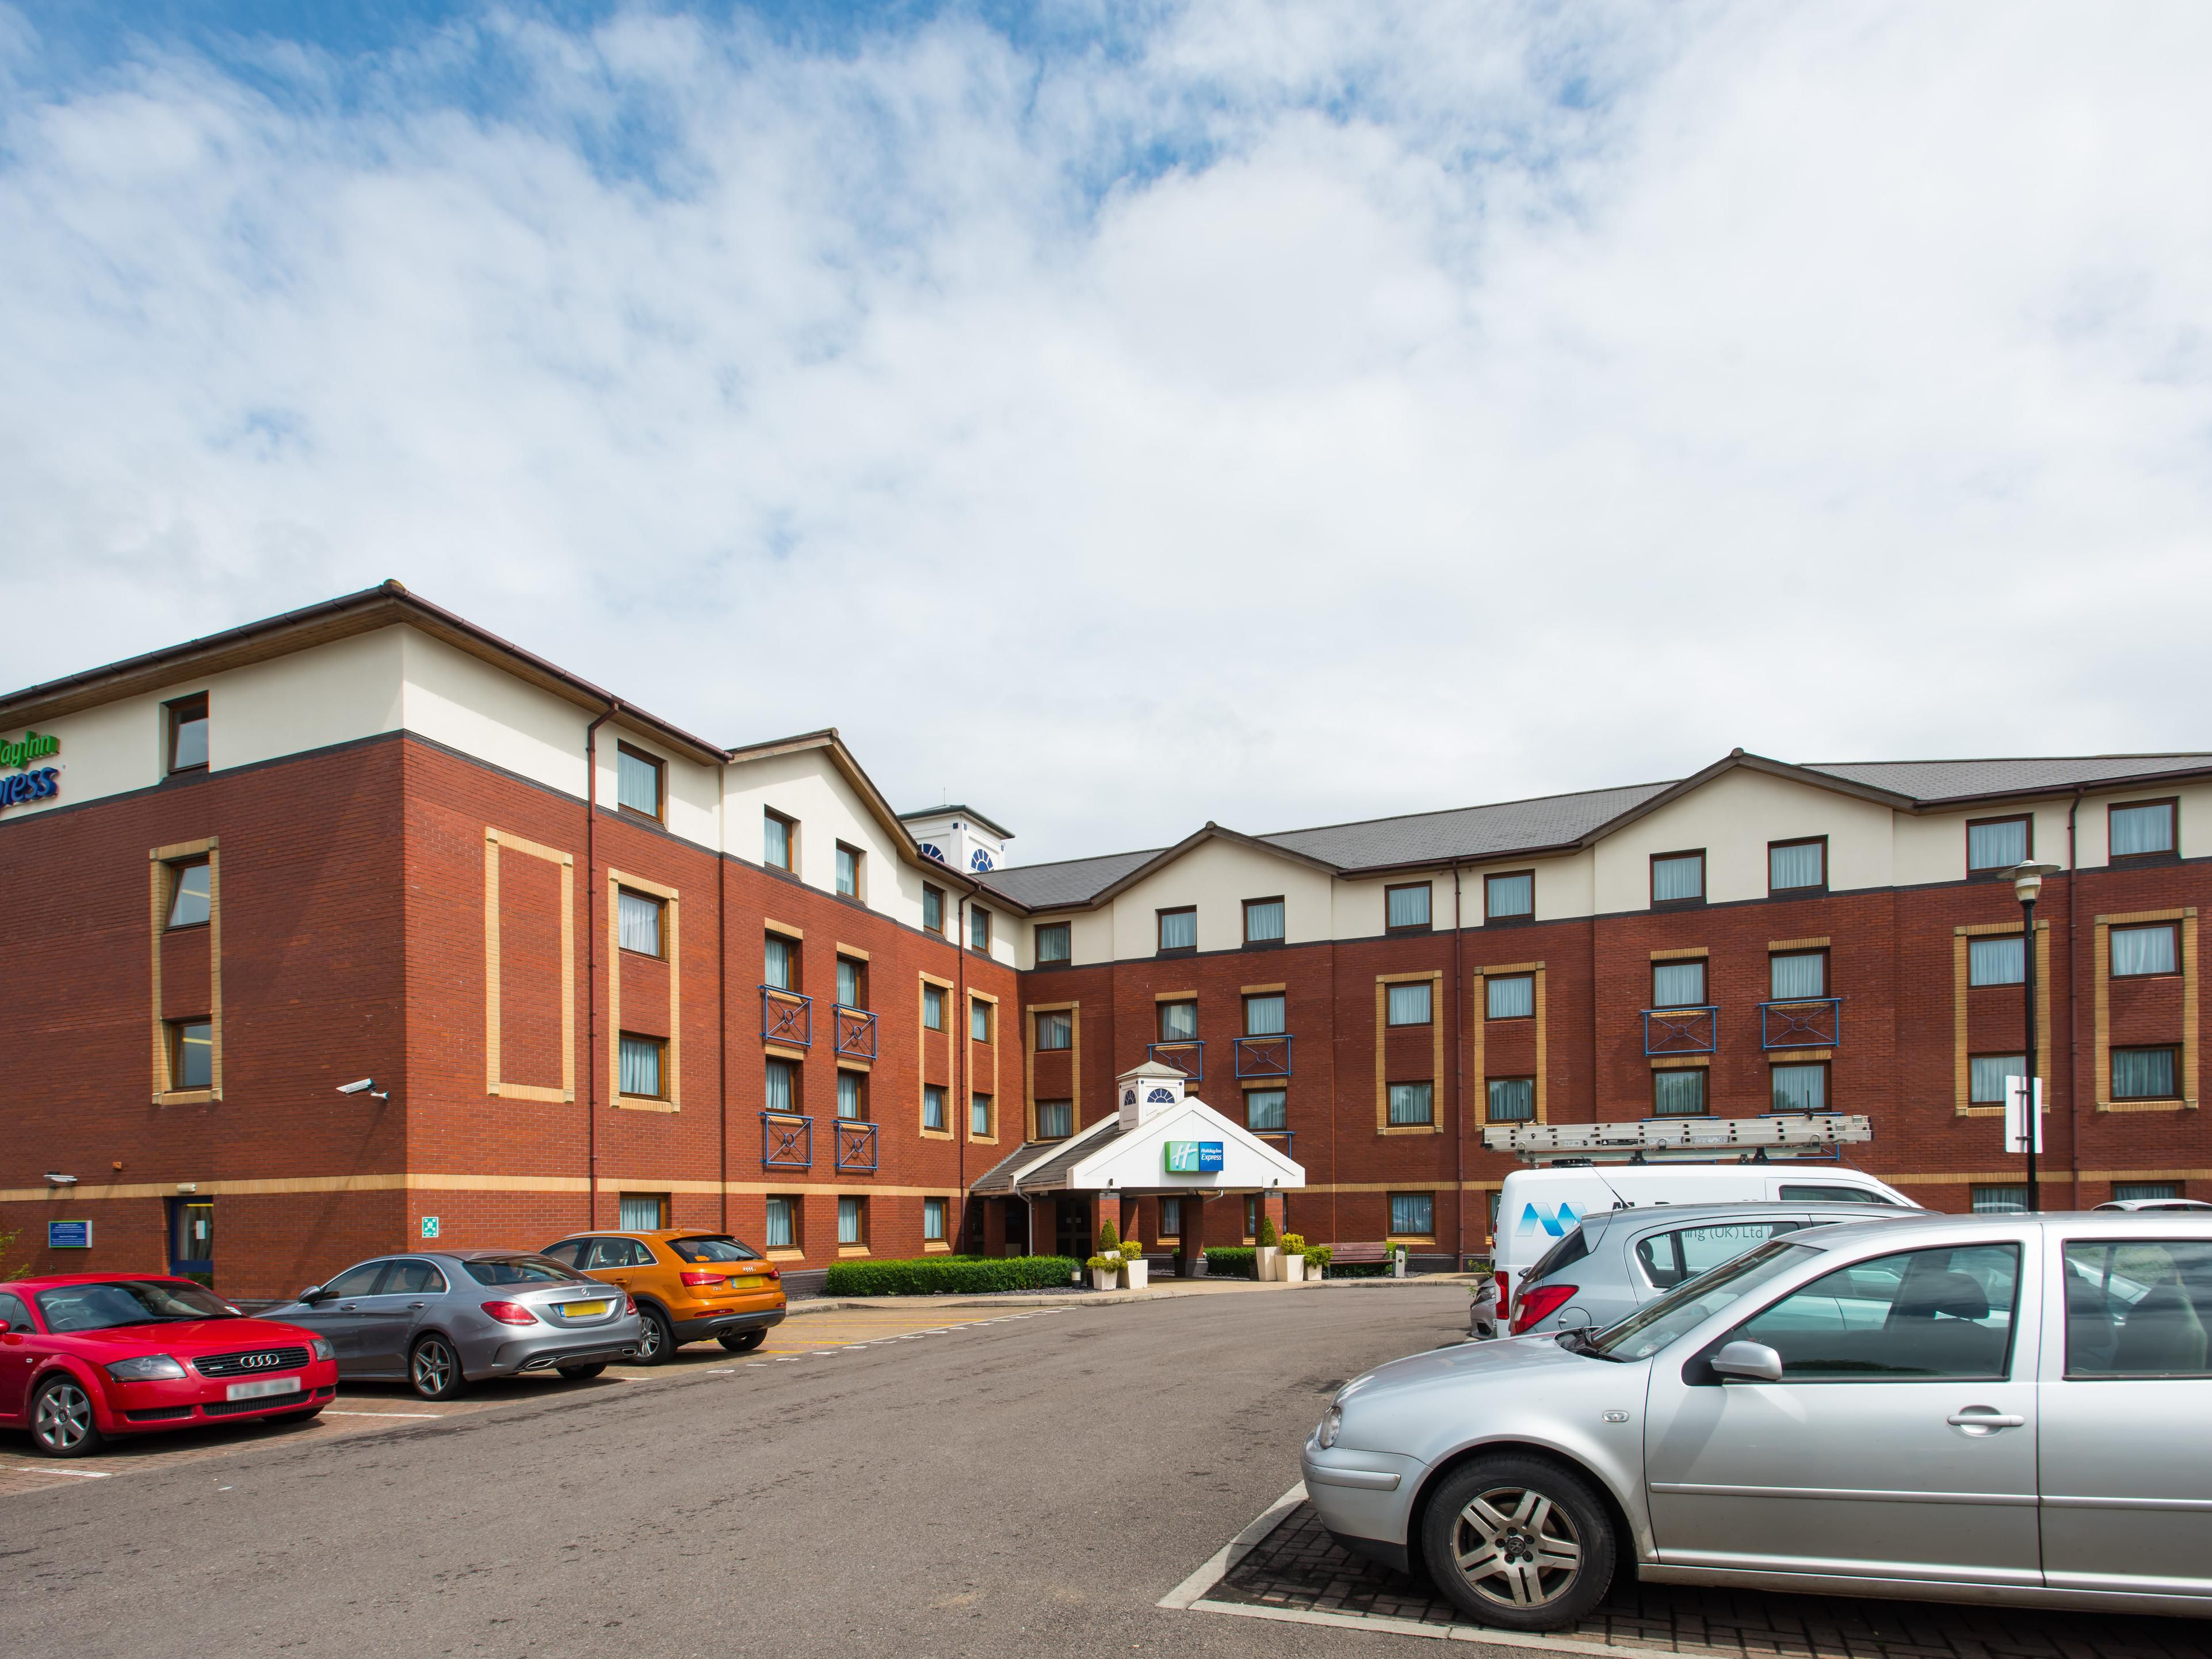 Hotel near parkway holiday inn express bristol north reheart Image collections